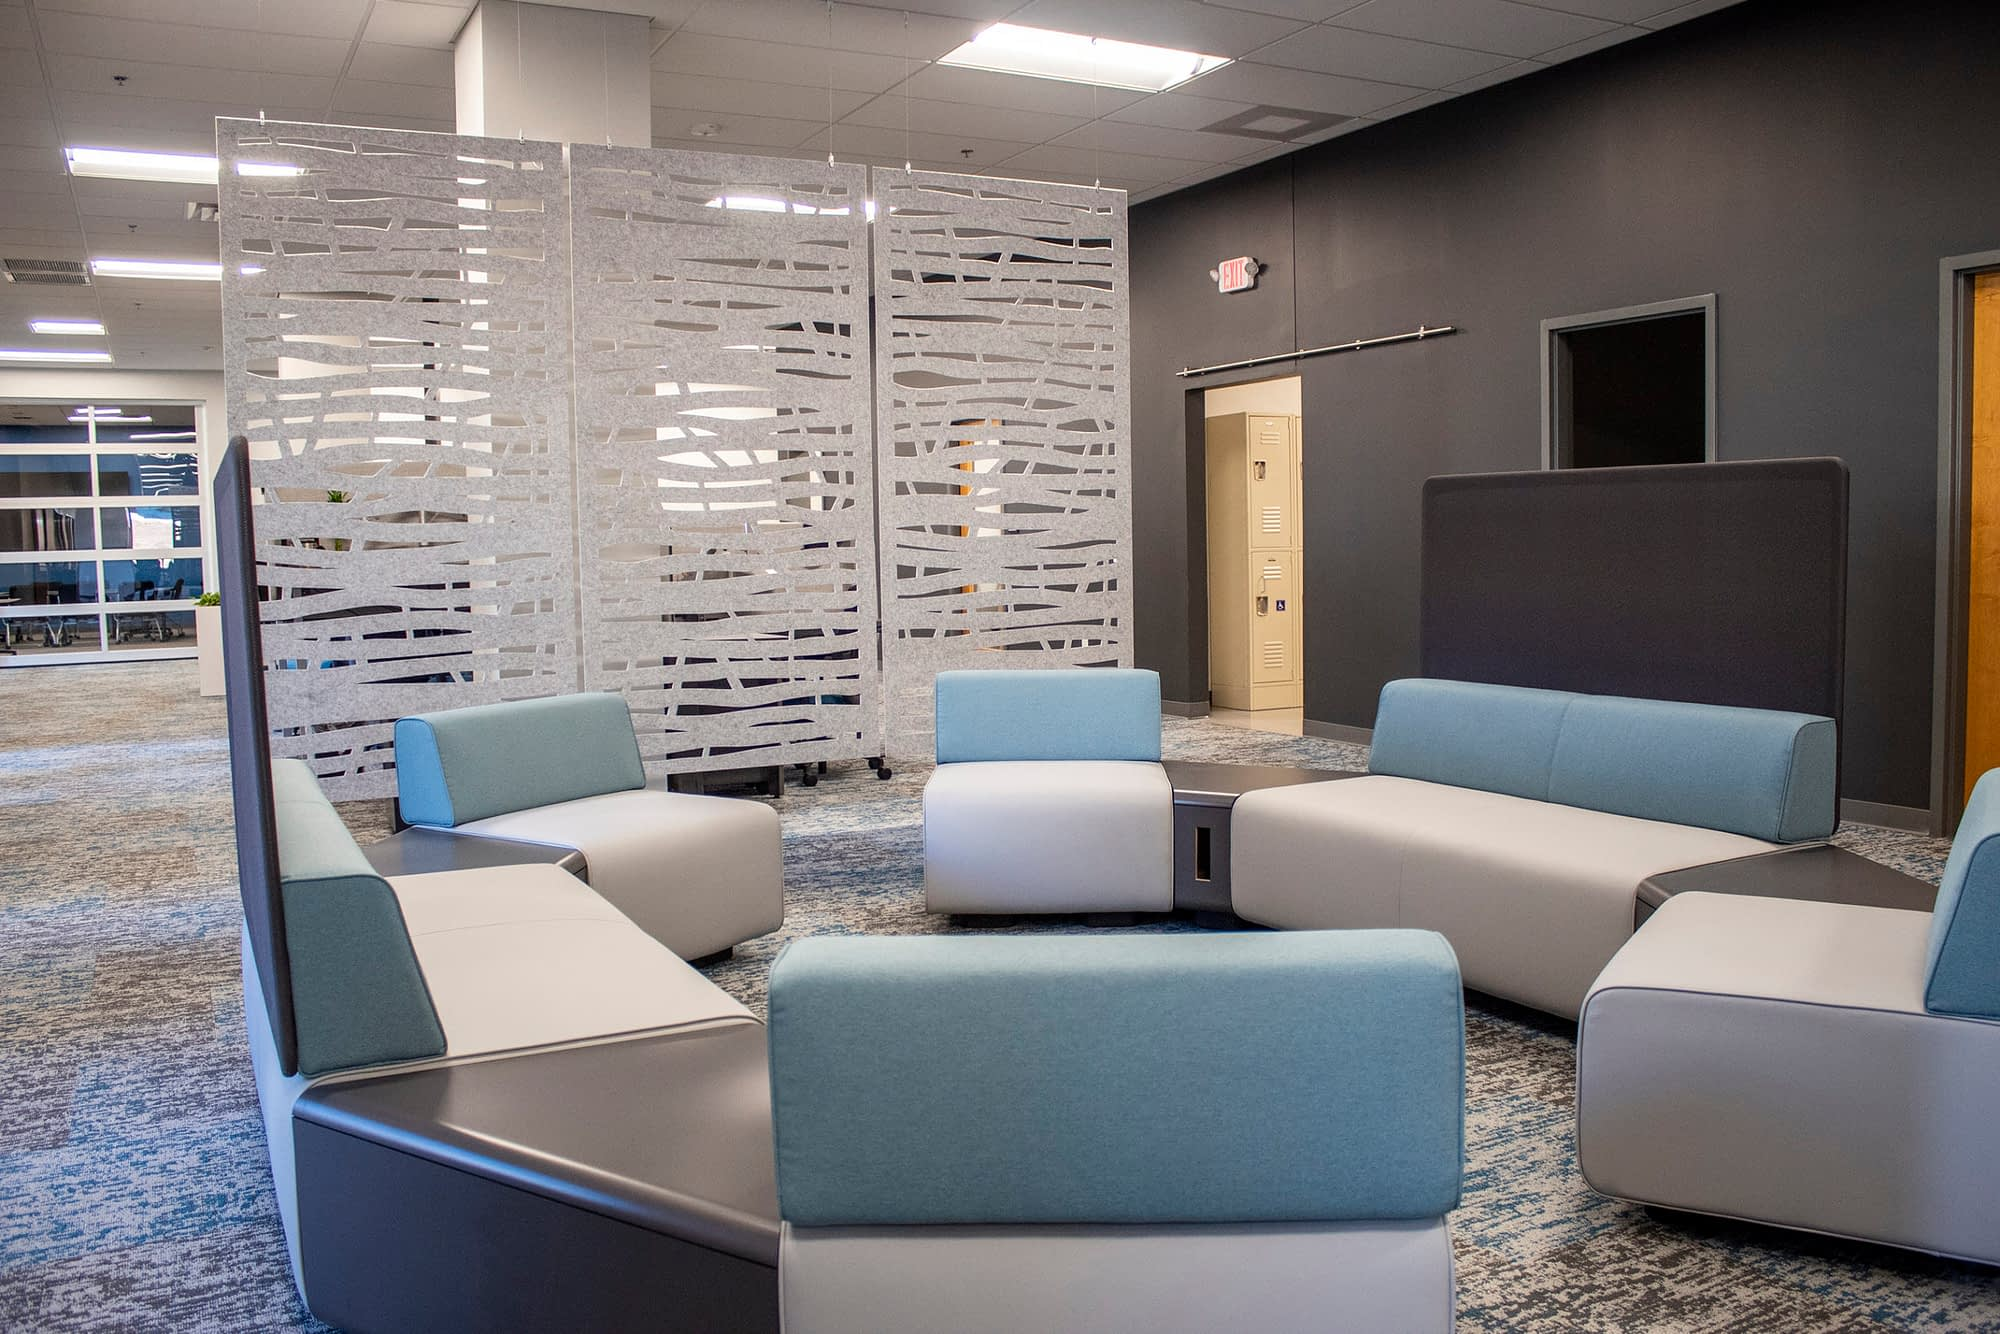 seating area with space divider panels